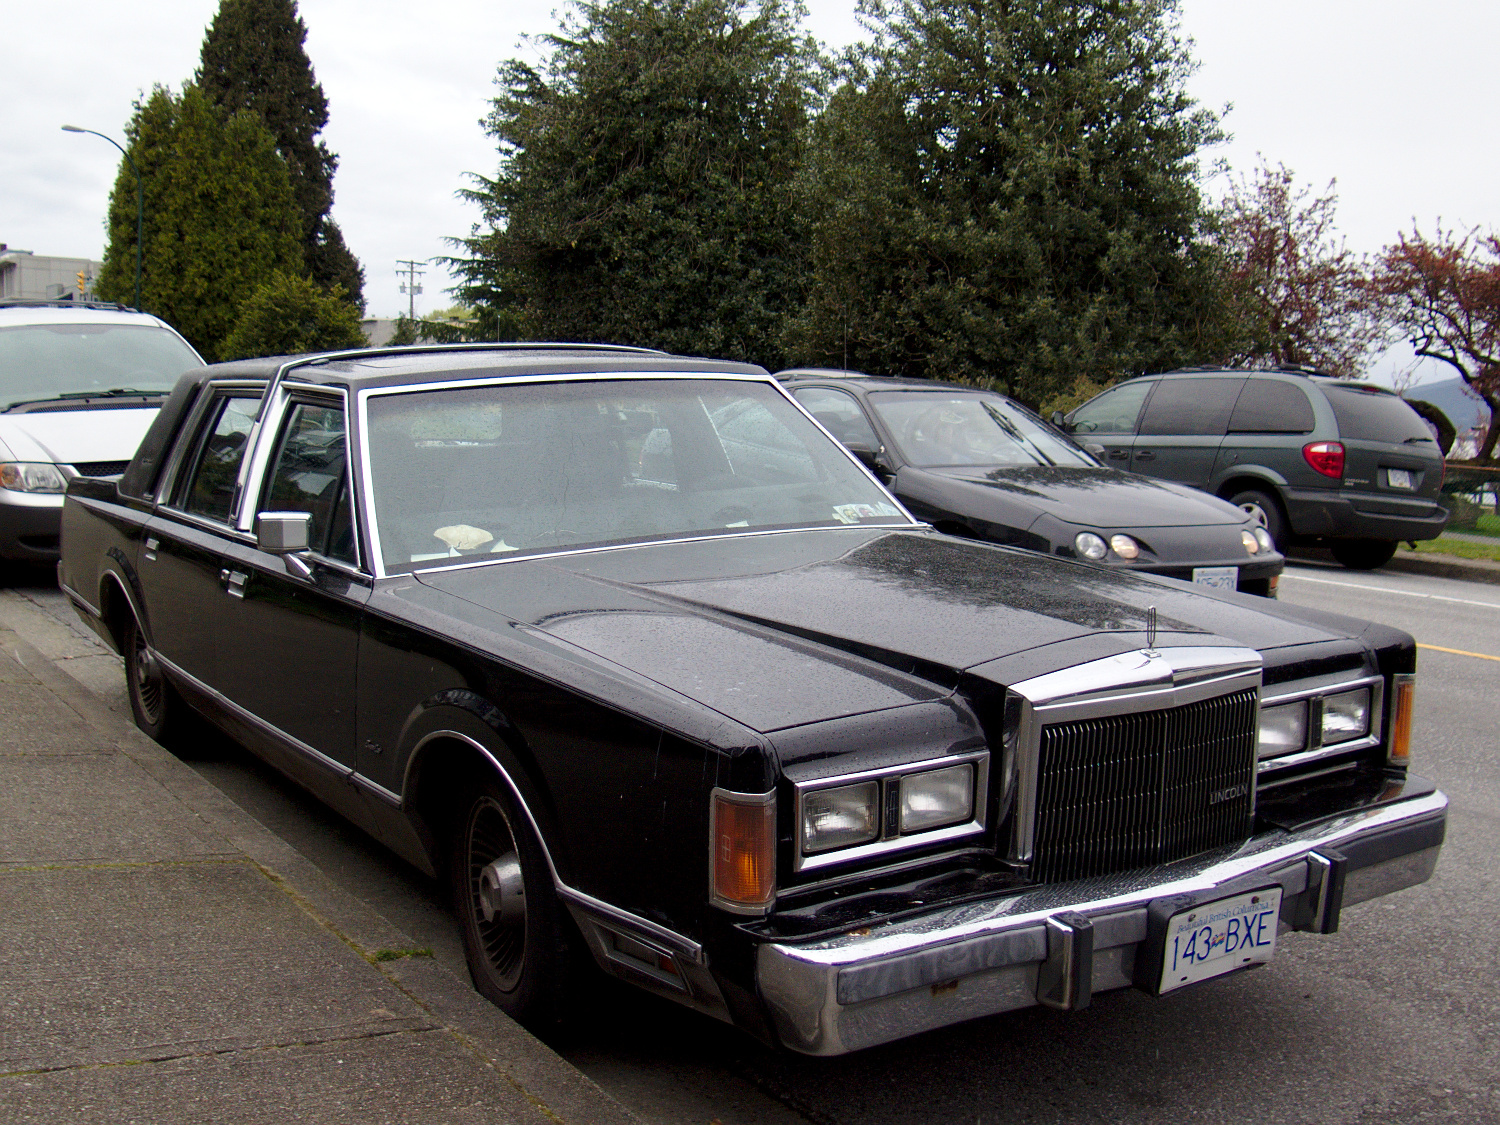 Old Parked Cars Vancouver: 1988 Lincoln Town Car